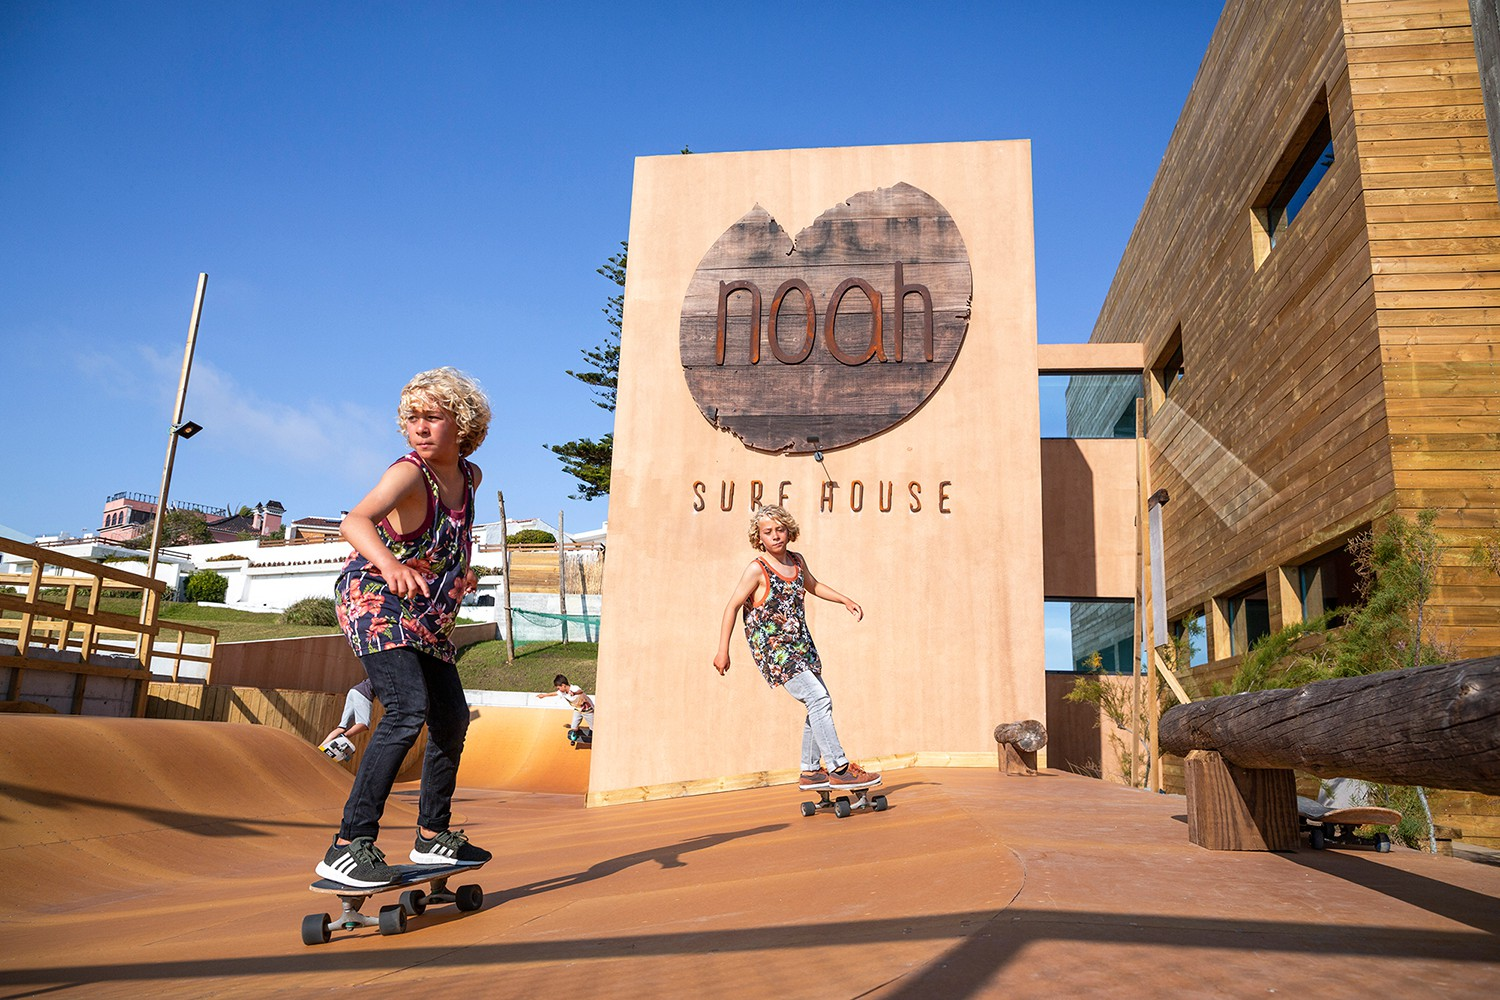 Noah Surf House Portugal f11522a4662